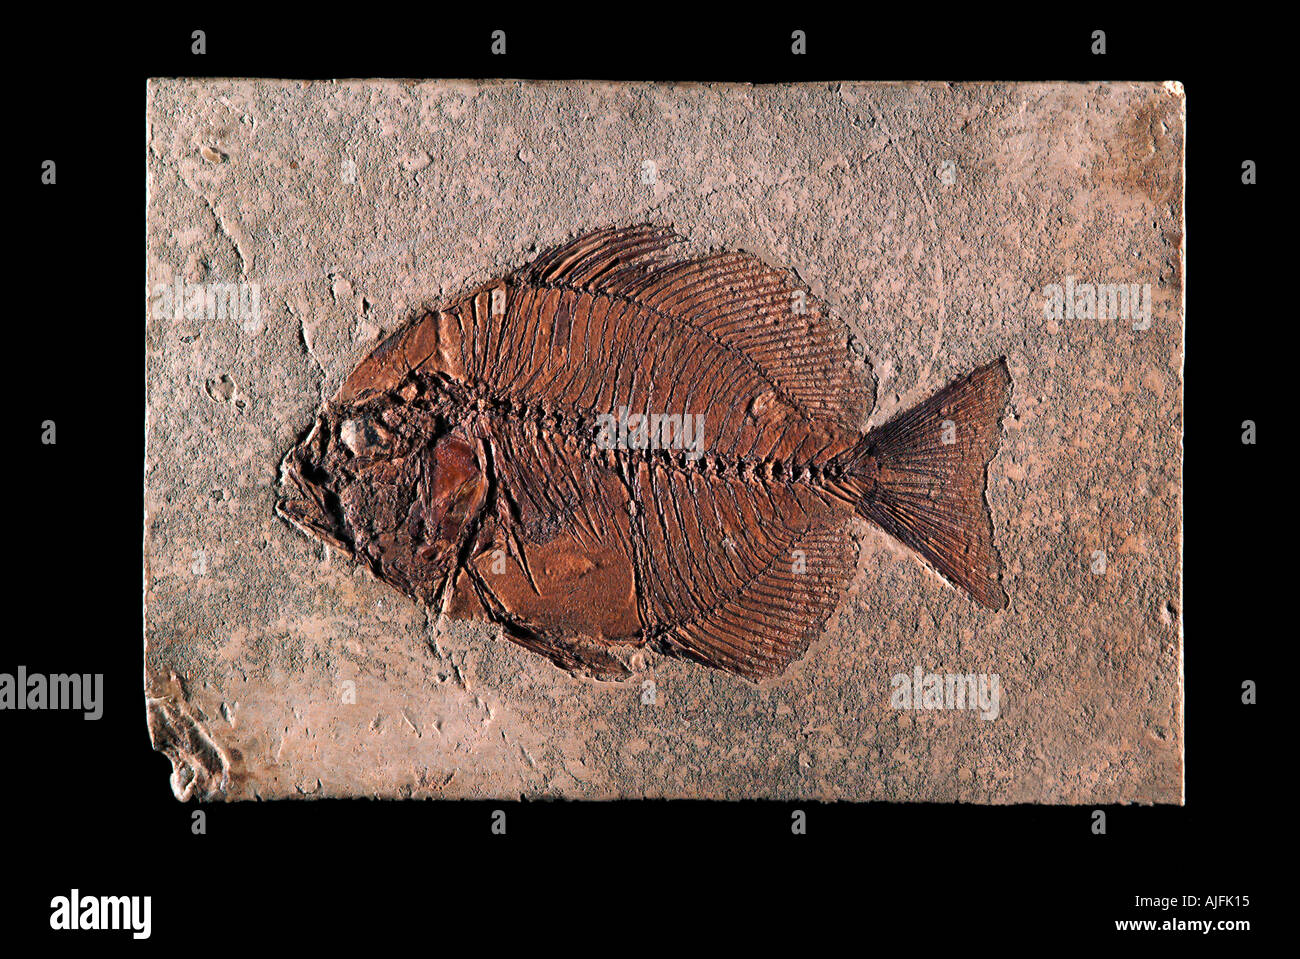 Archaephippus asper Fossil Fish Middle Eocene Lithographic Limestone Monte Bolca Italy - Stock Image